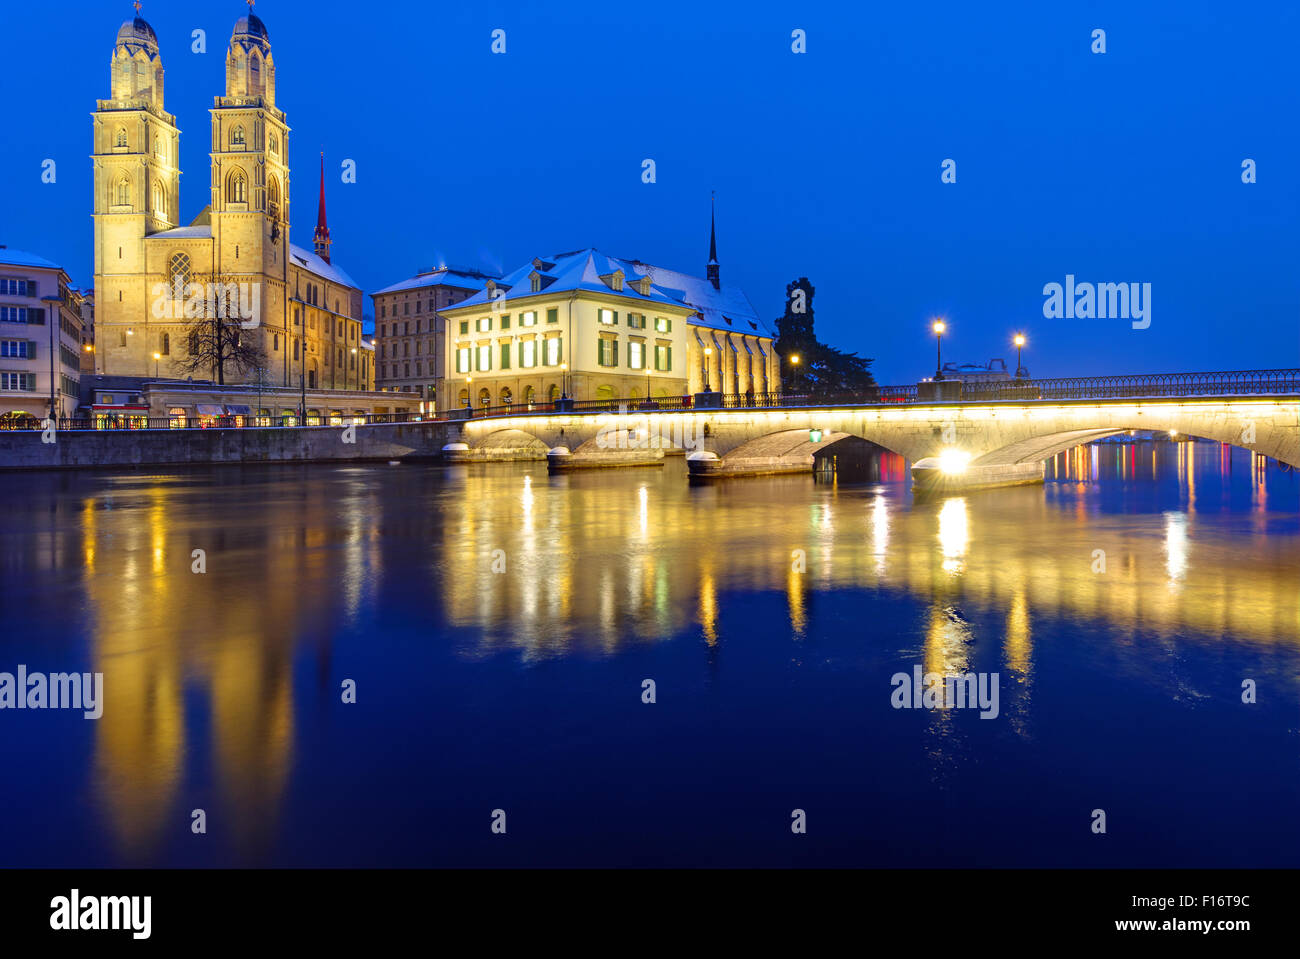 A bridge and the Minster in Zurich in winter at night - Stock Image